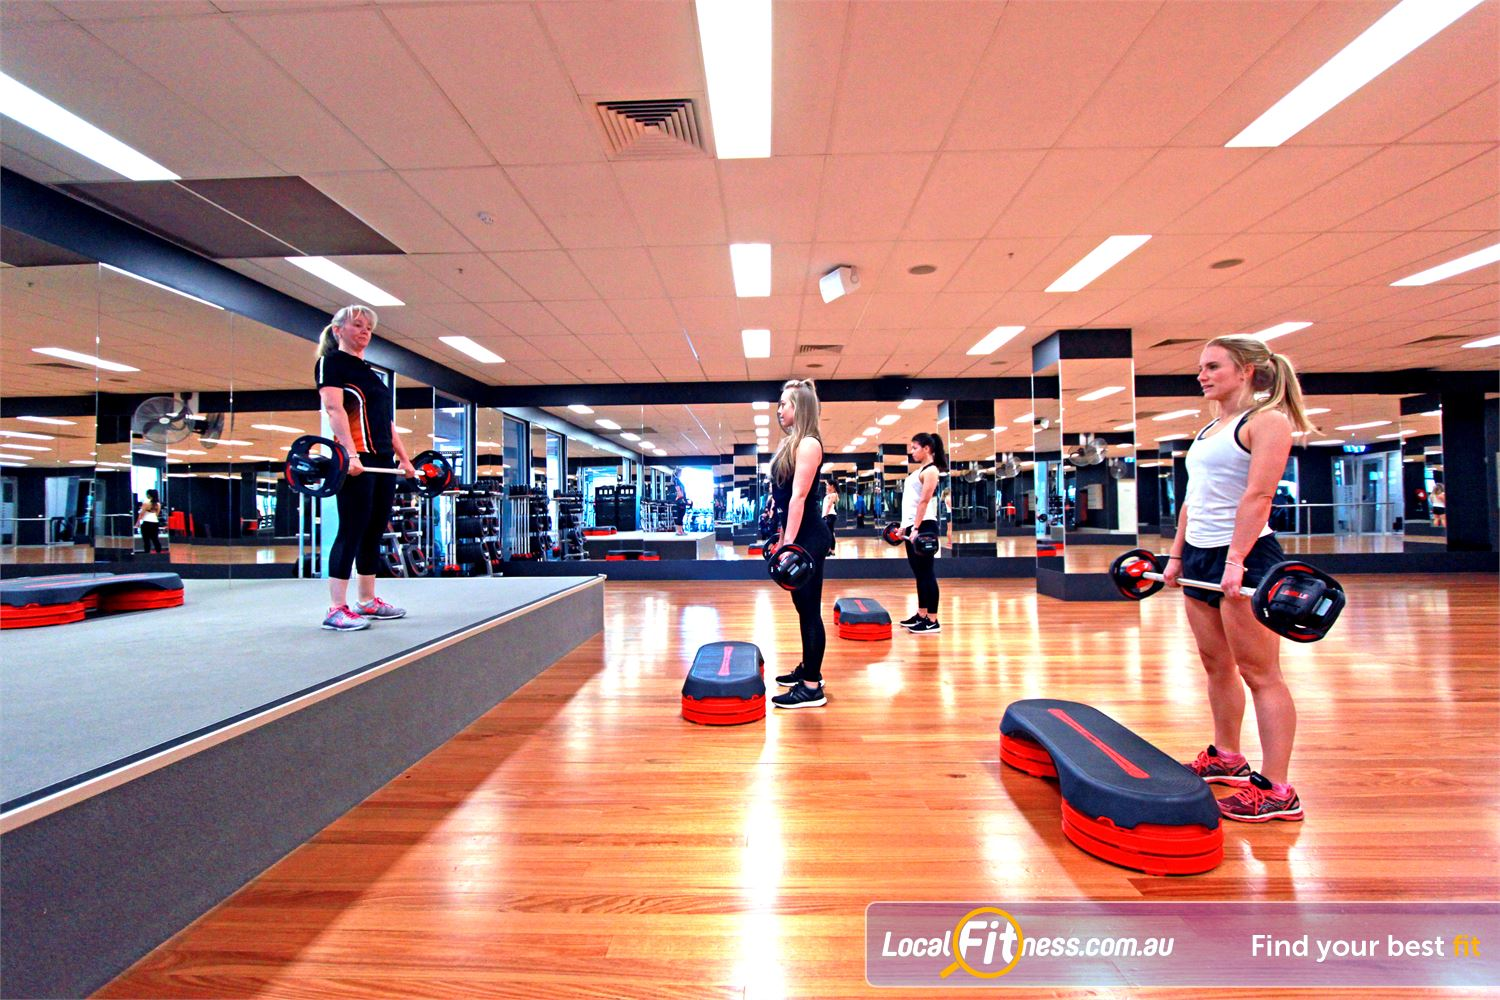 South Pacific Health Clubs Near Parkdale Over 100 classes per week inc. Les Mills, Boxing, Bootcamp and more.